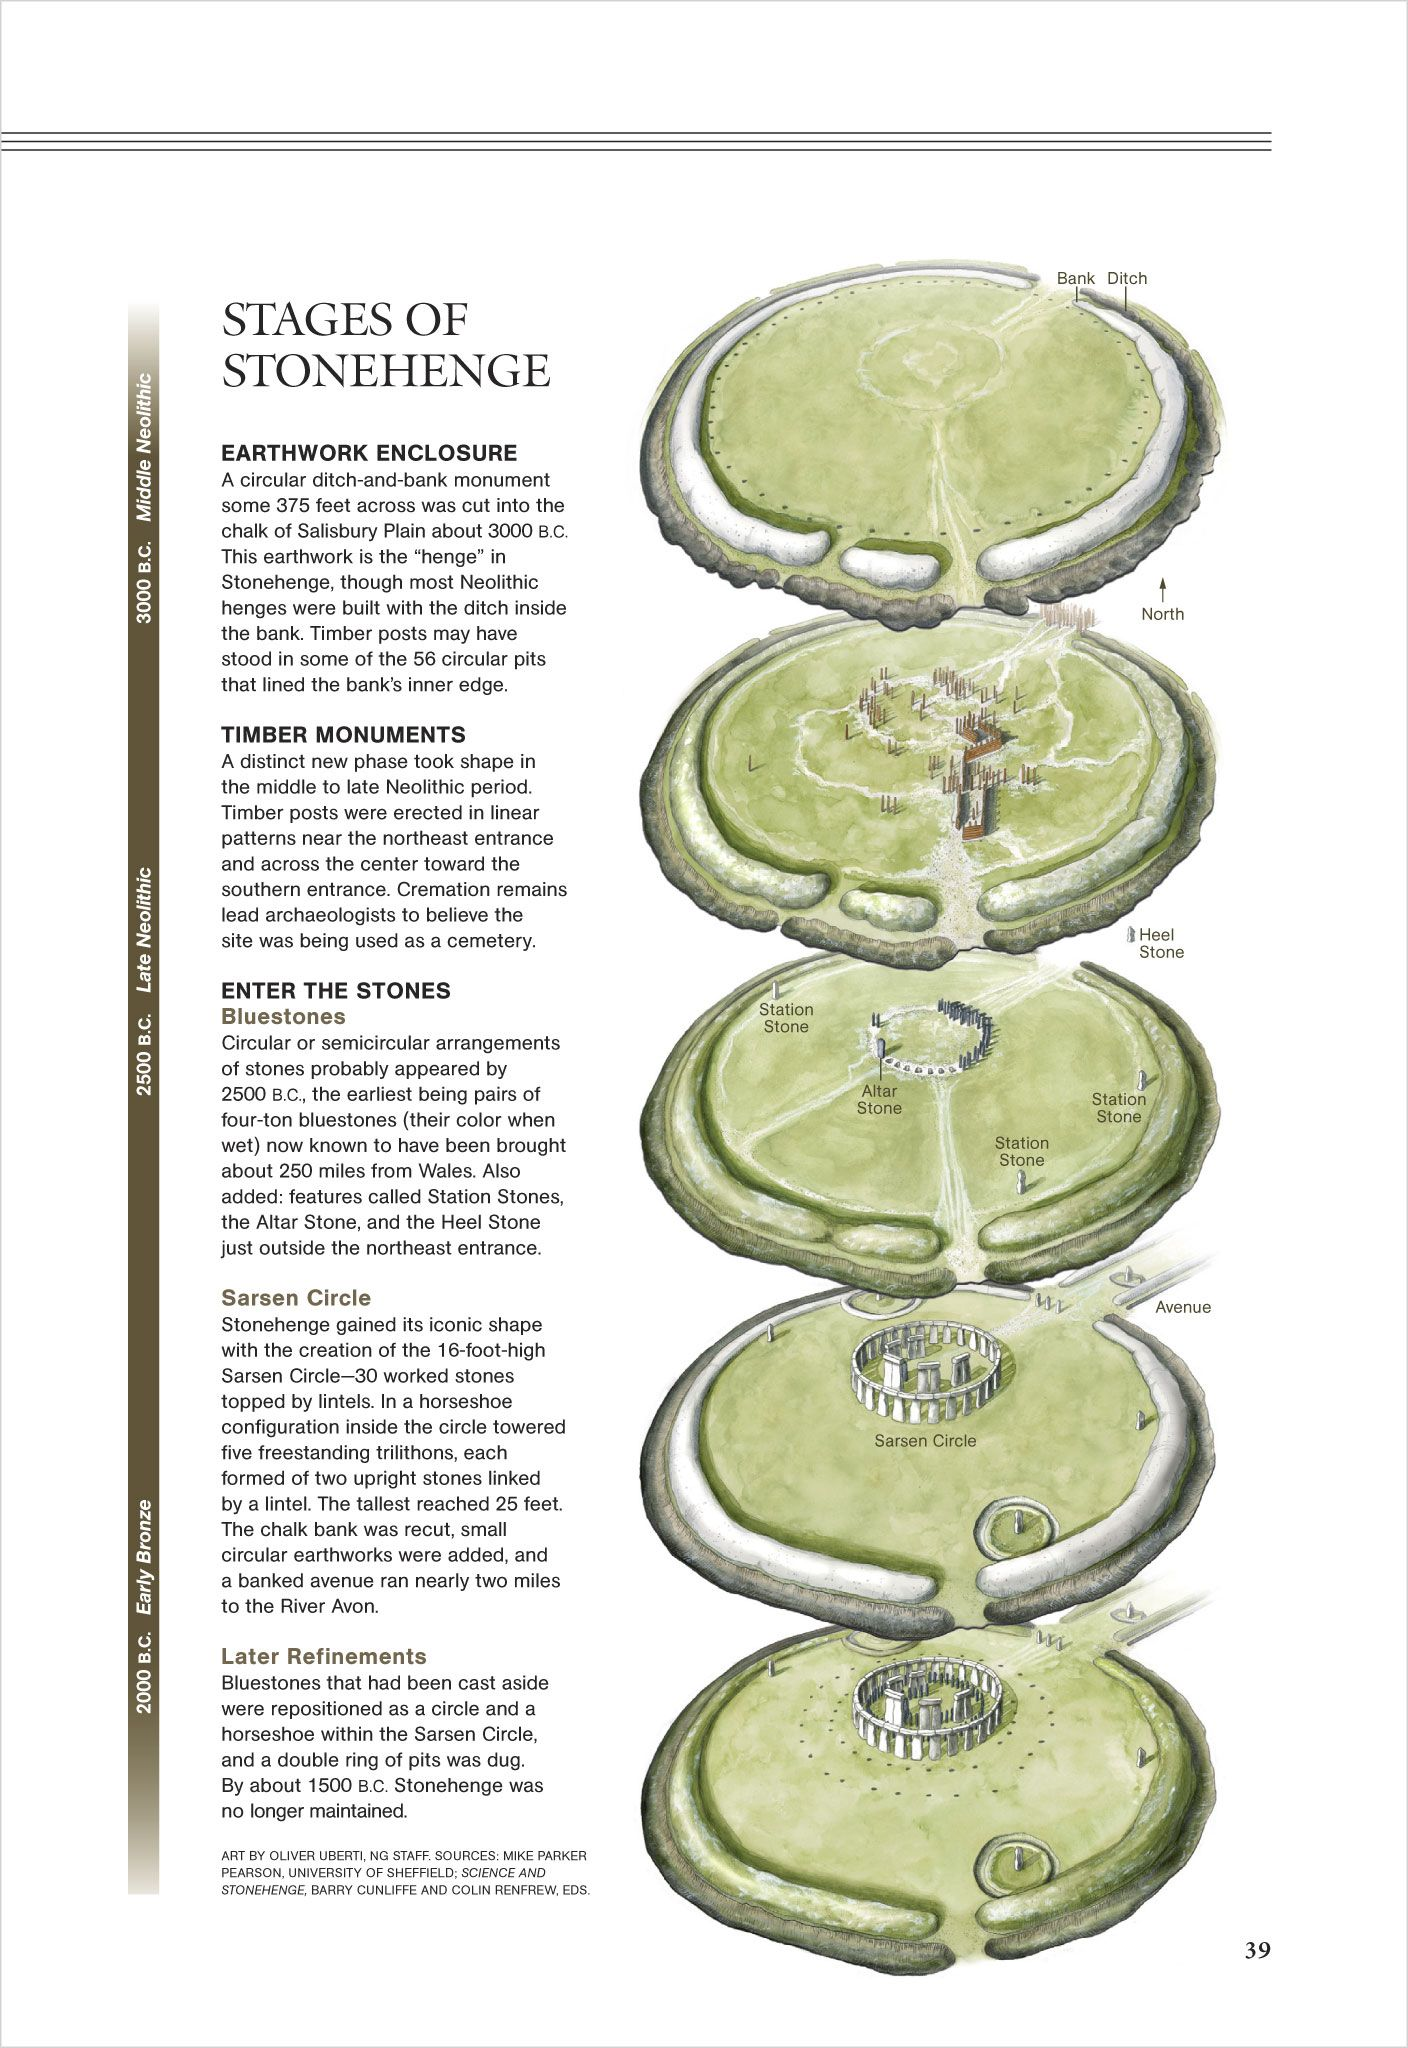 The building stages of the stonehenge monolith